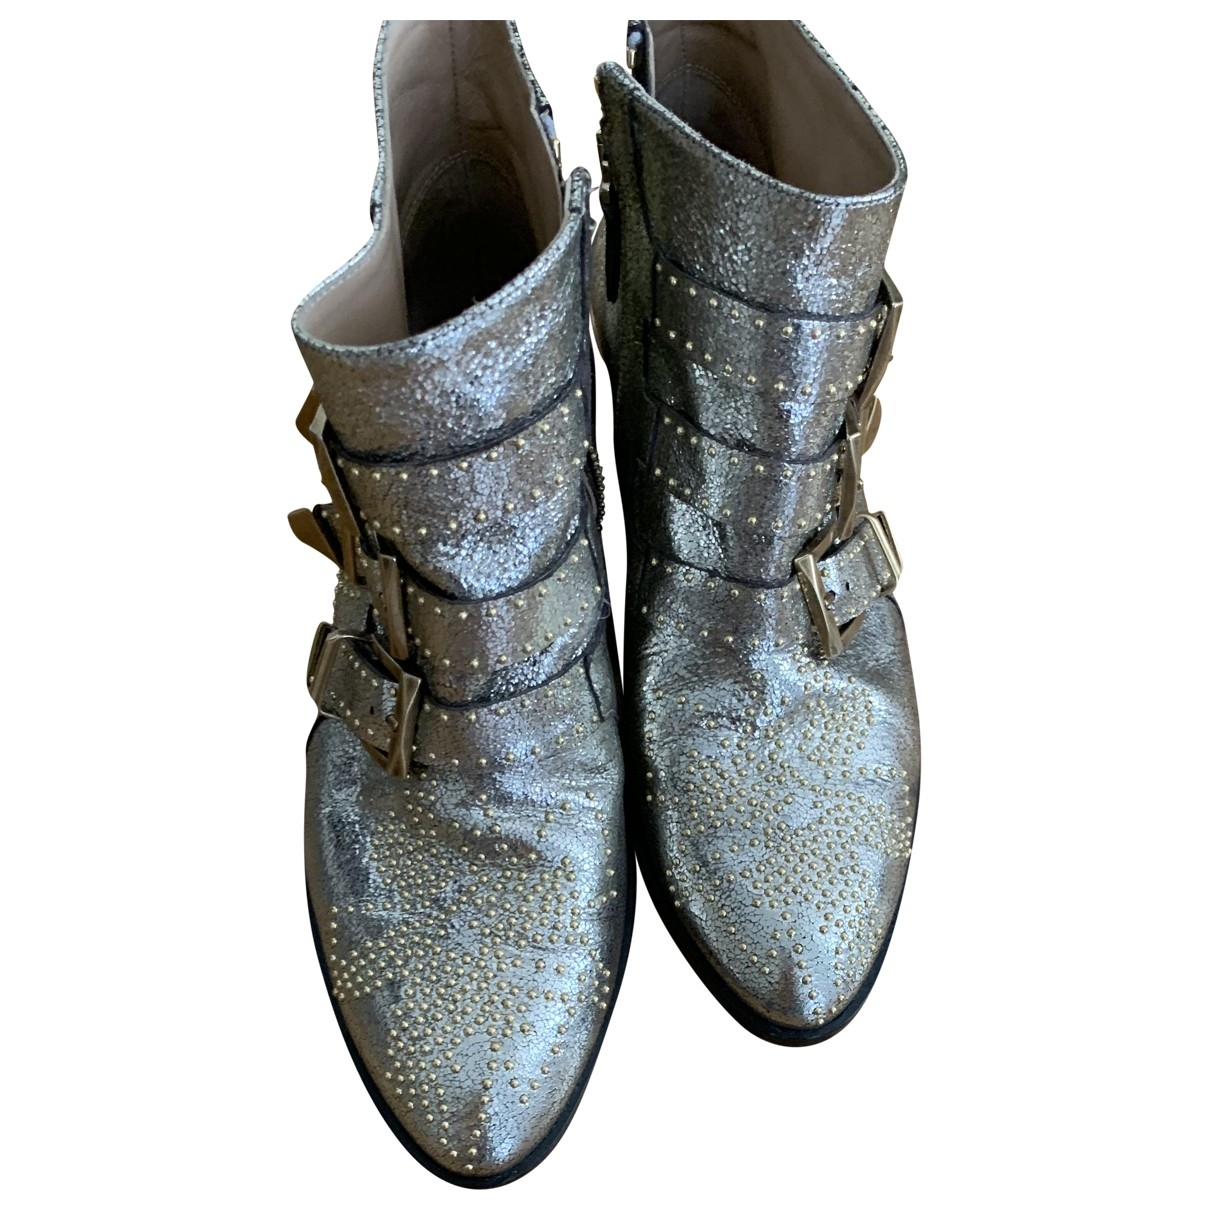 Chloé Susanna Silver Leather Ankle boots for Women 36 EU